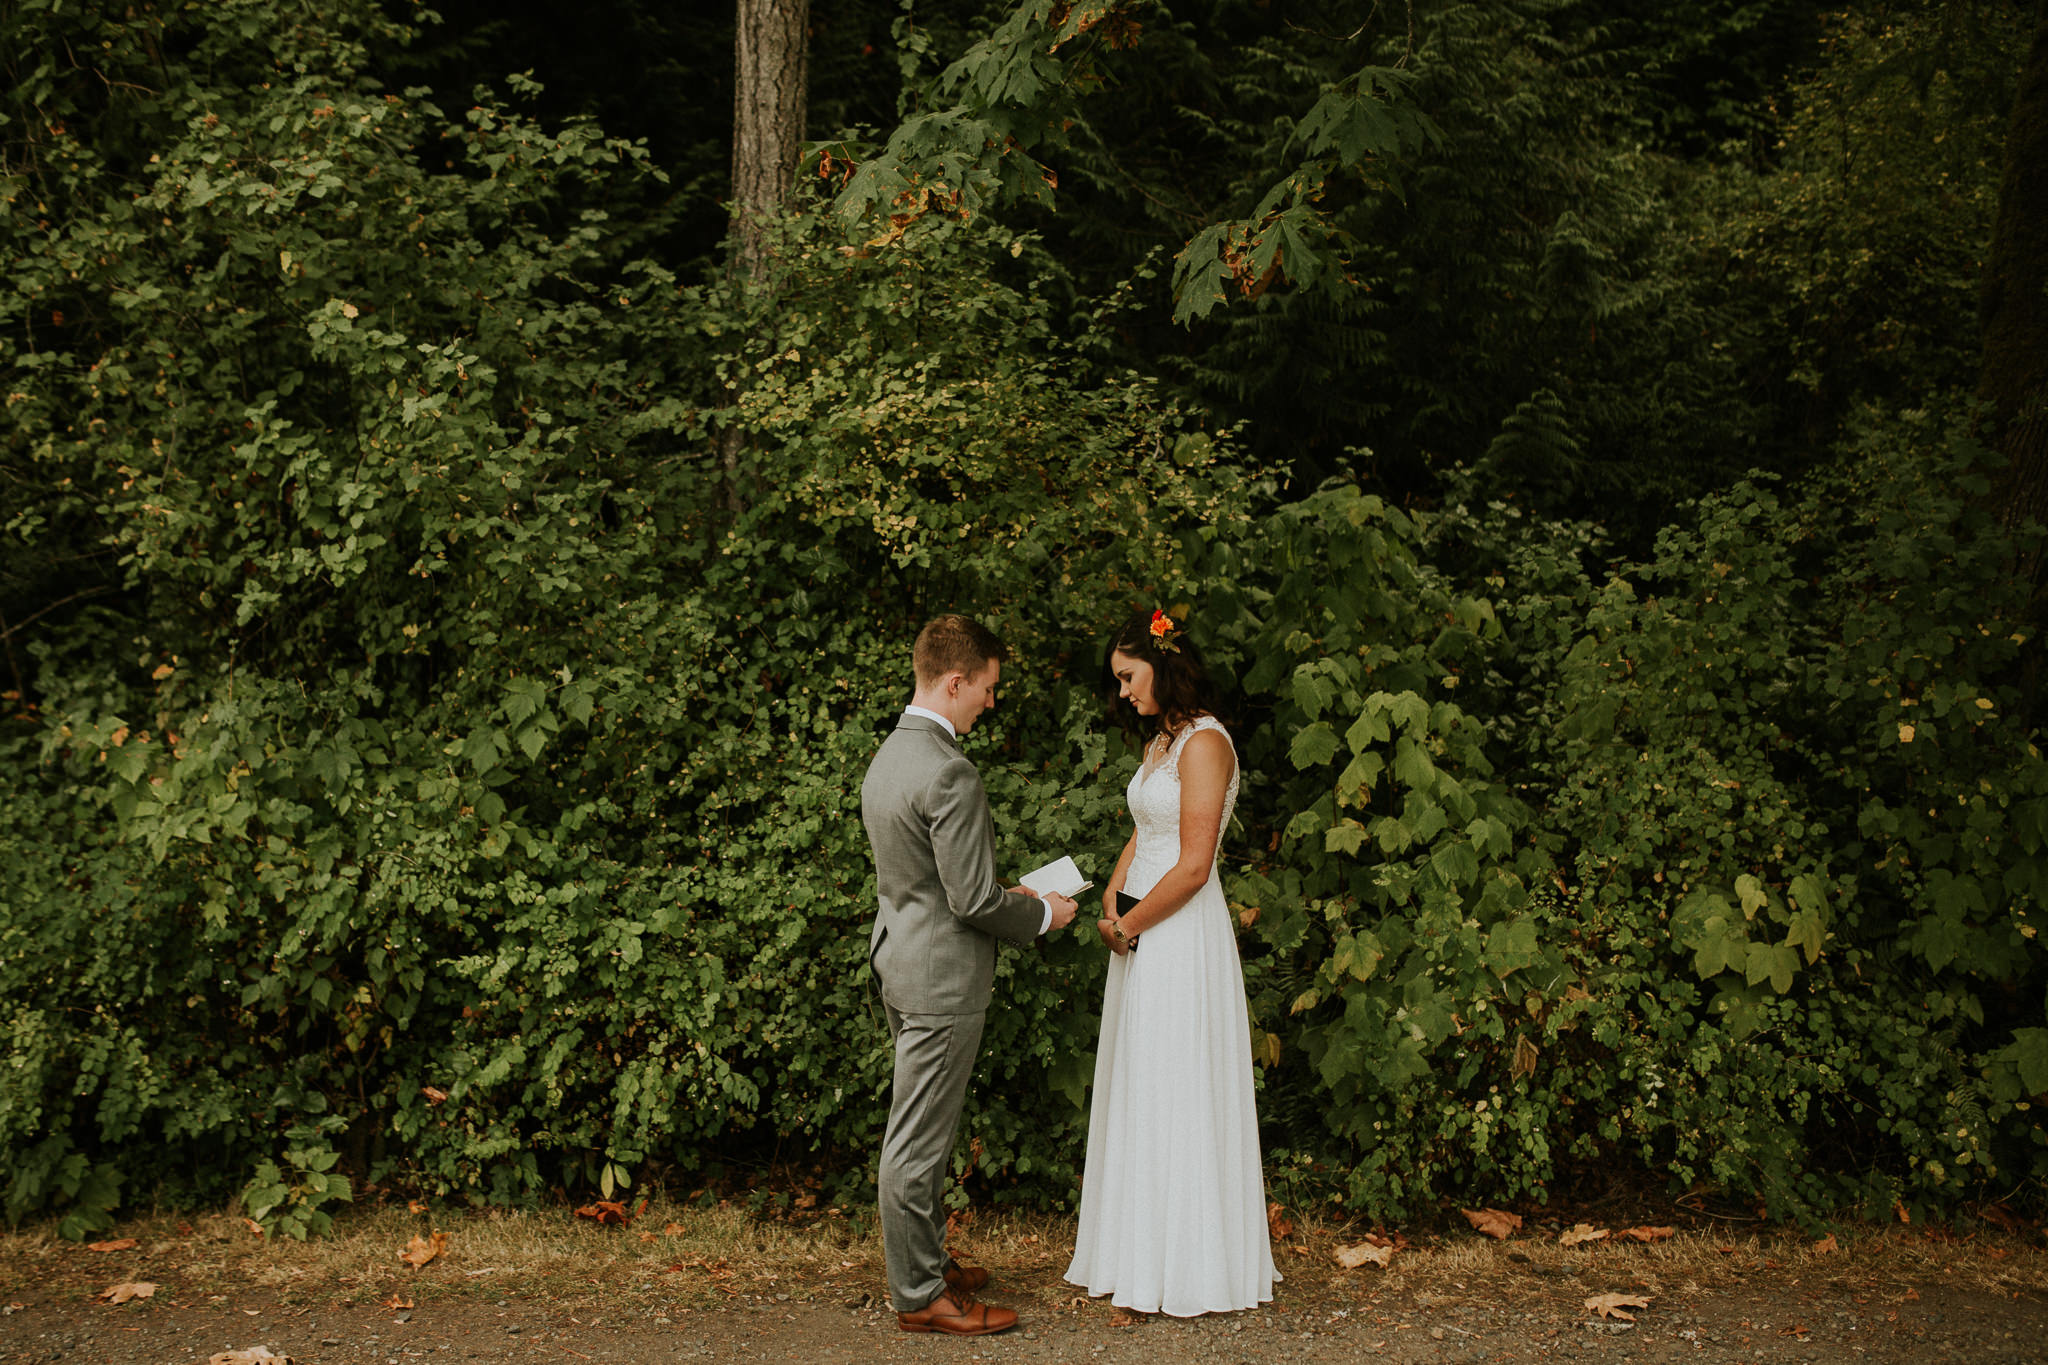 Port-Orchard-Manchester-Park-elopement-Bride-And-Groom-16.jpg